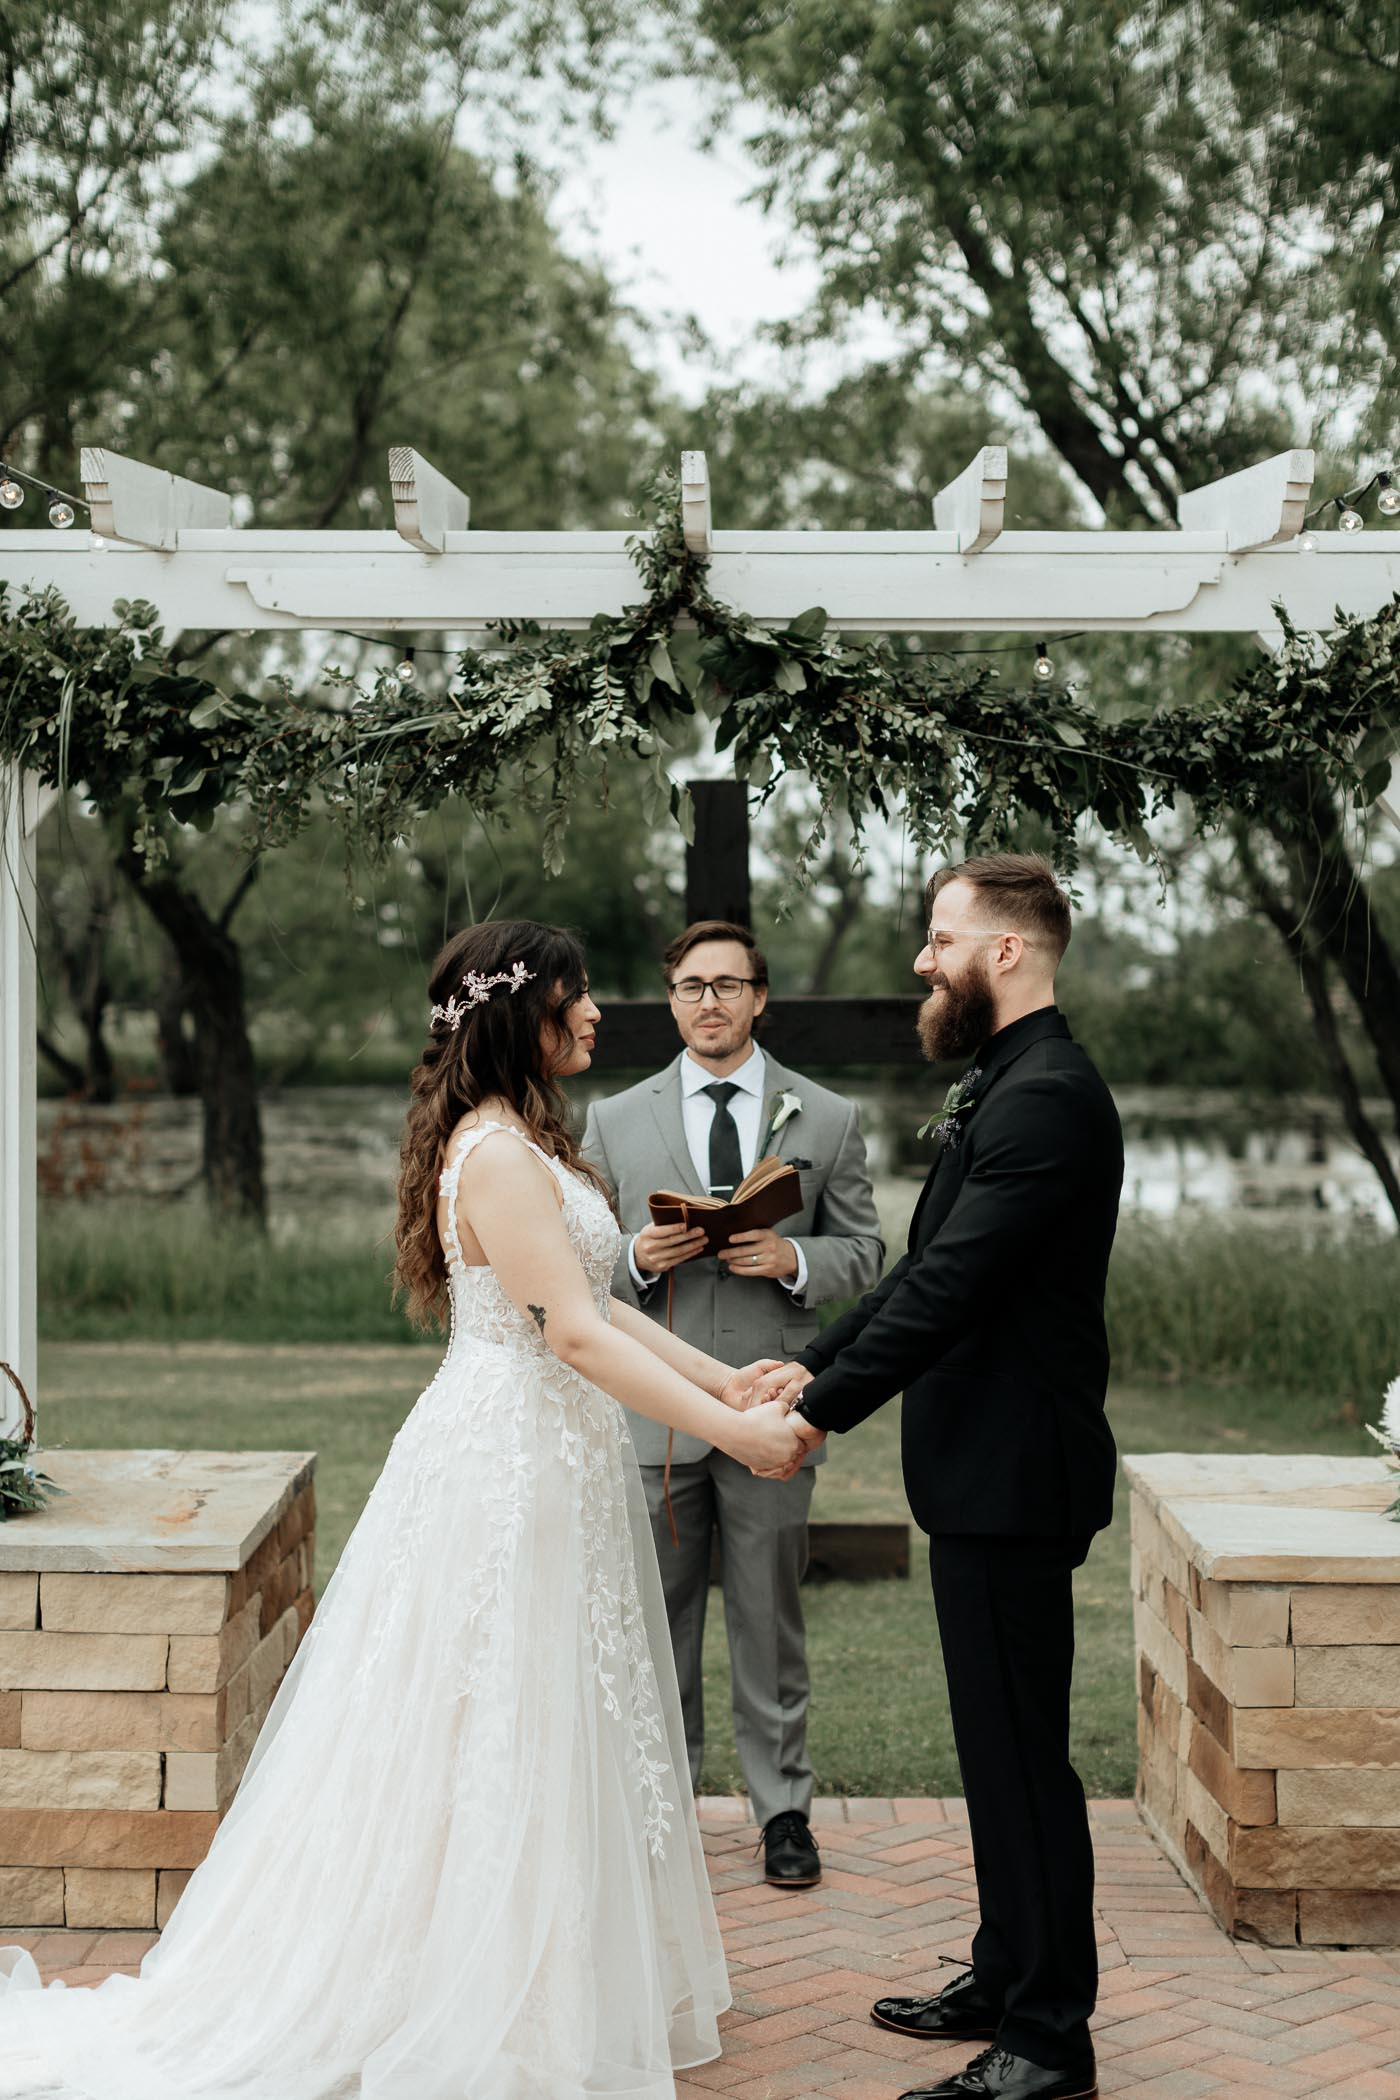 Bride and groom standing at altar during outdoor wedding ceremony